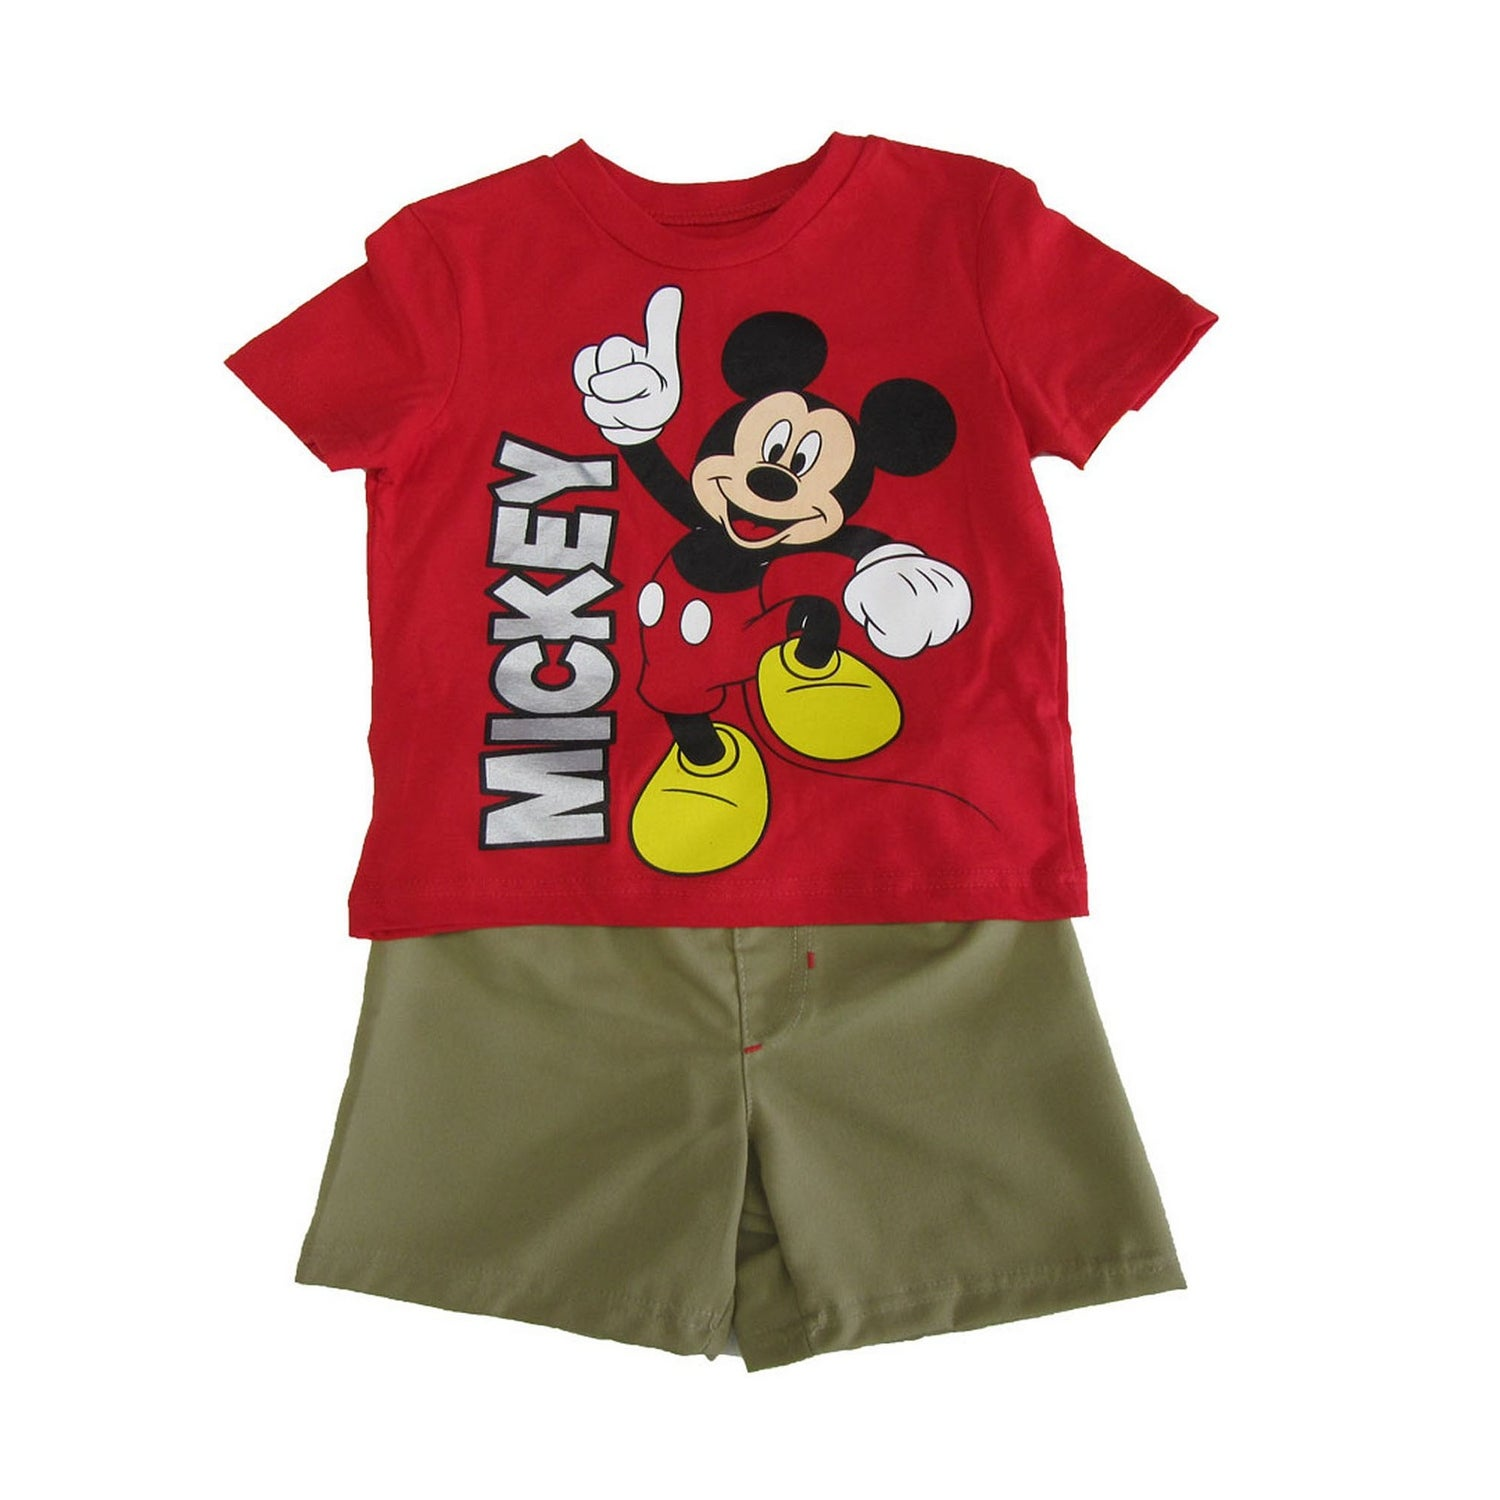 c1255c5400b5 Disney Boys' Clothing | Find Great Children's Clothing Deals Shopping at  Overstock